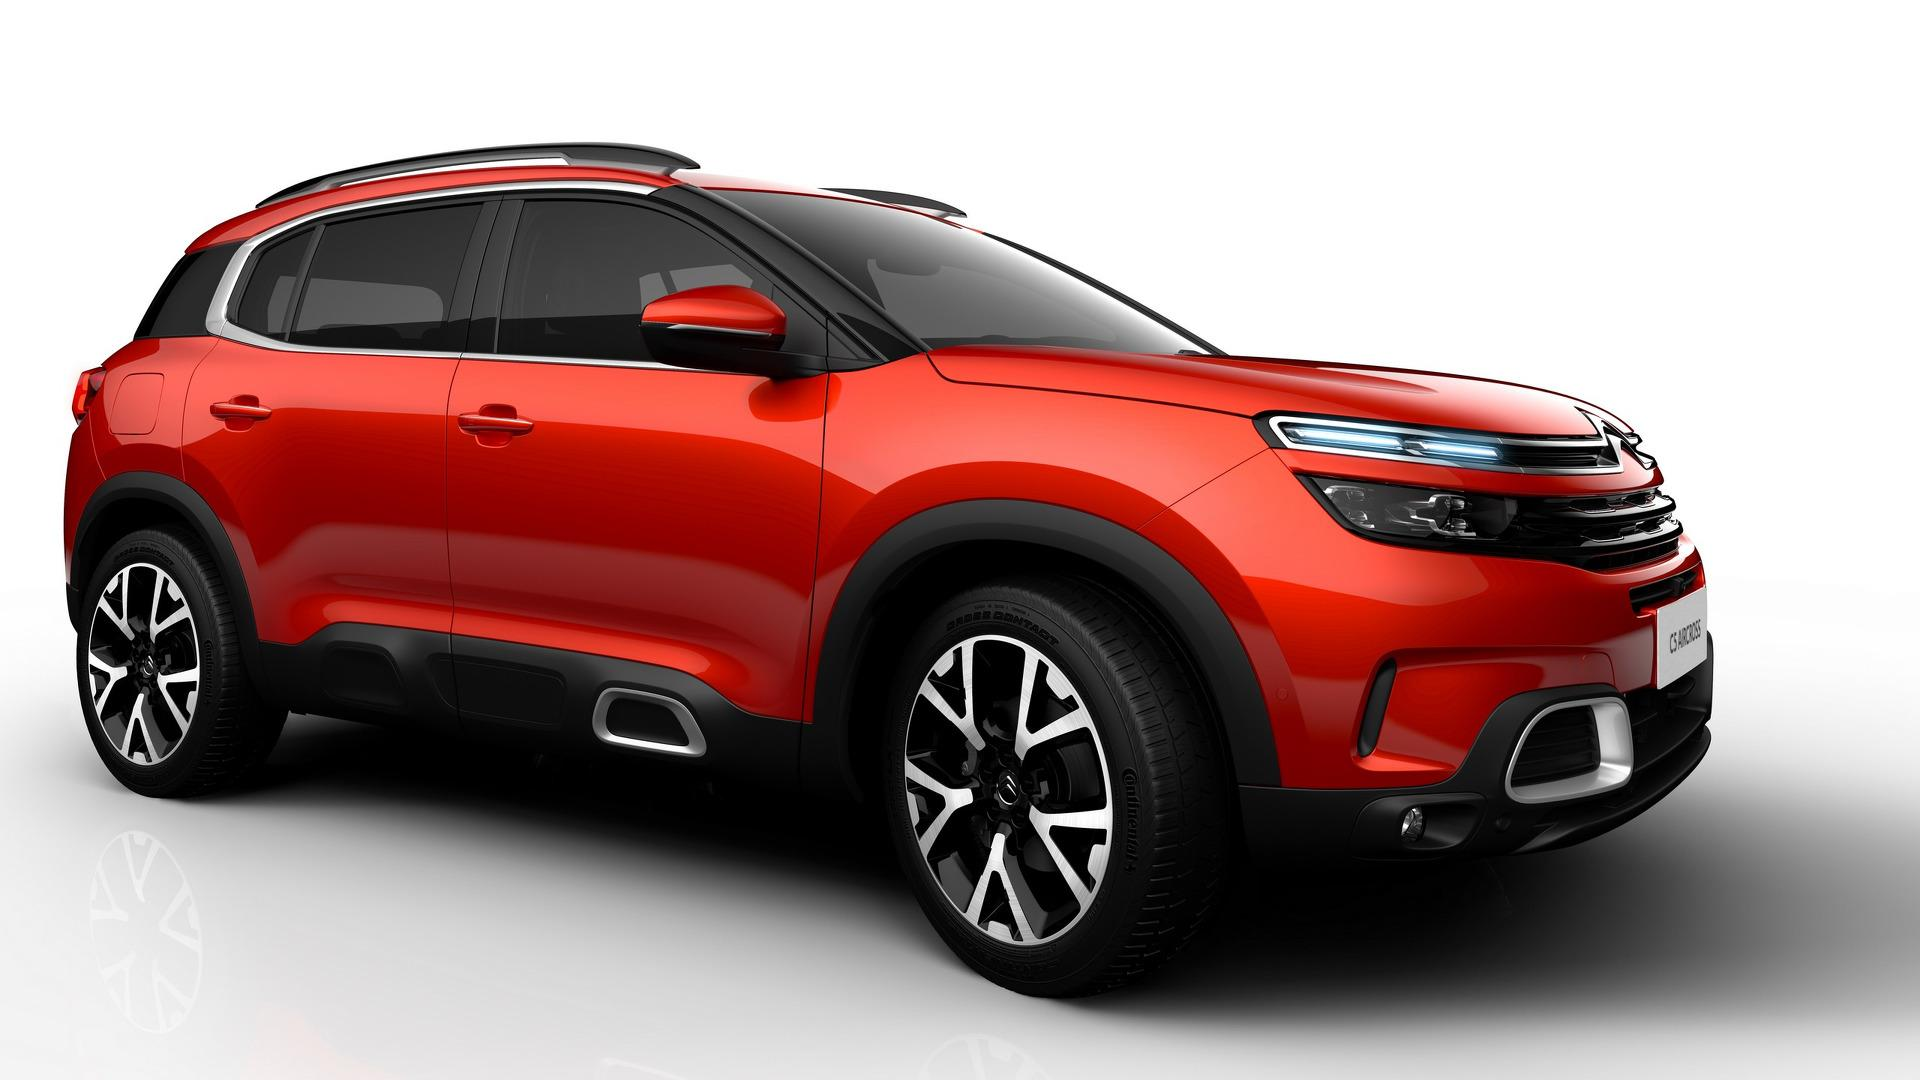 2020 Citroën C5 Aircross All Wheel Drive